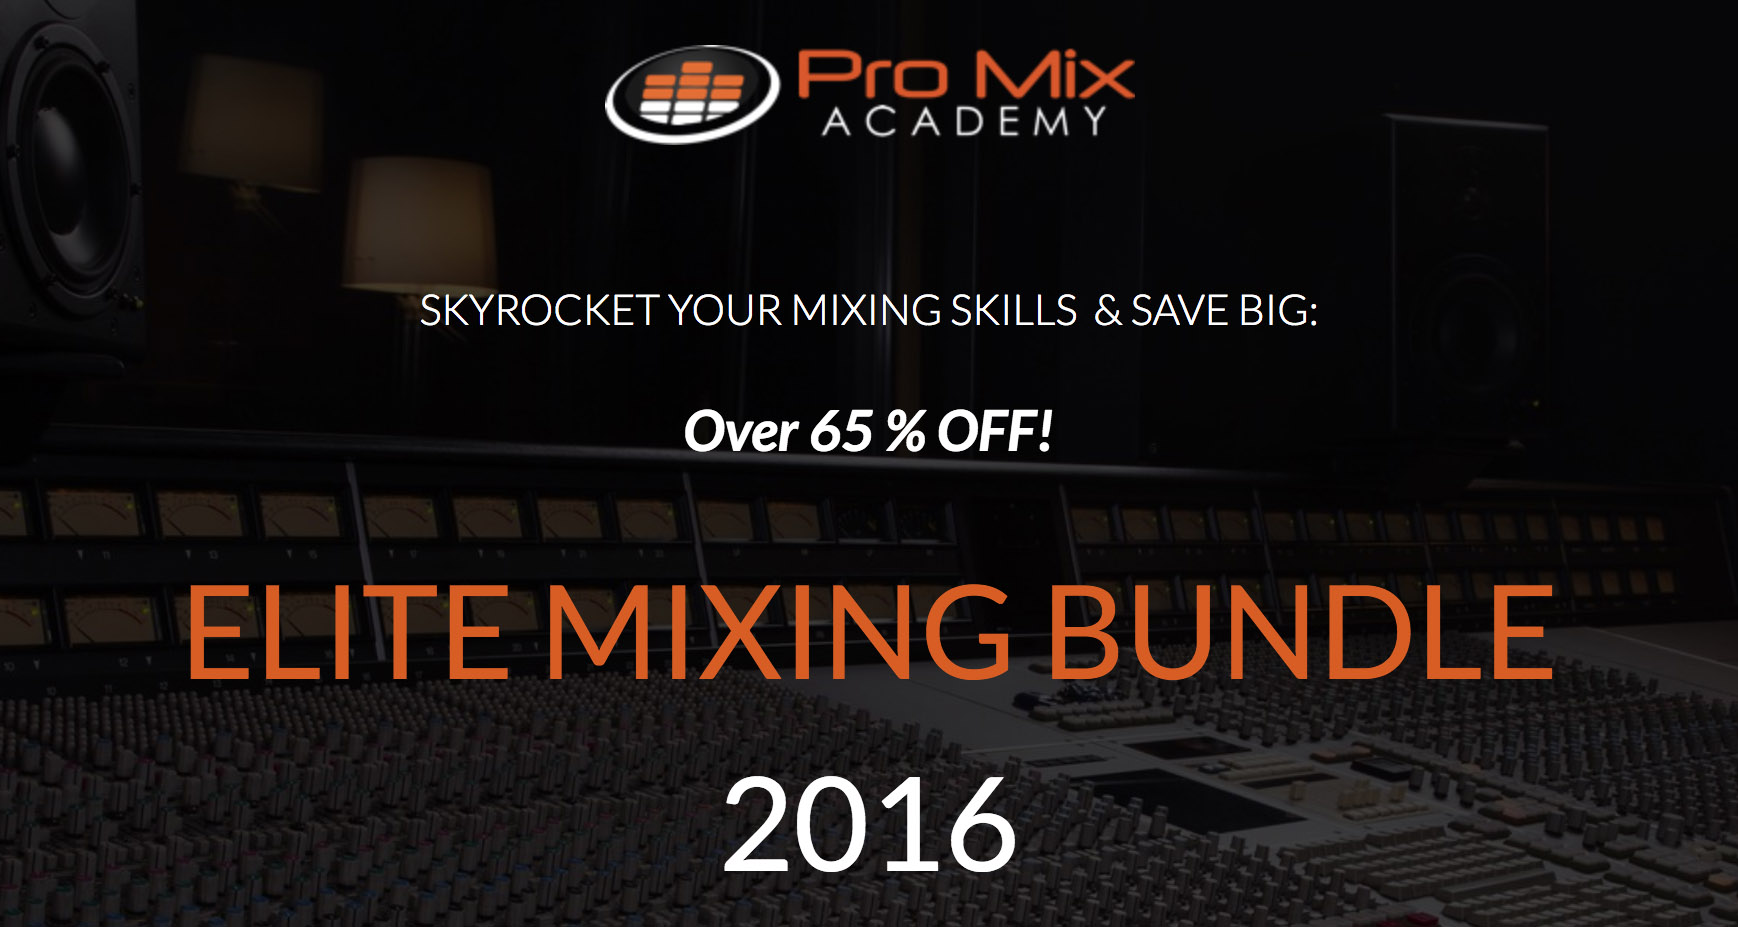 elite mixing bundle